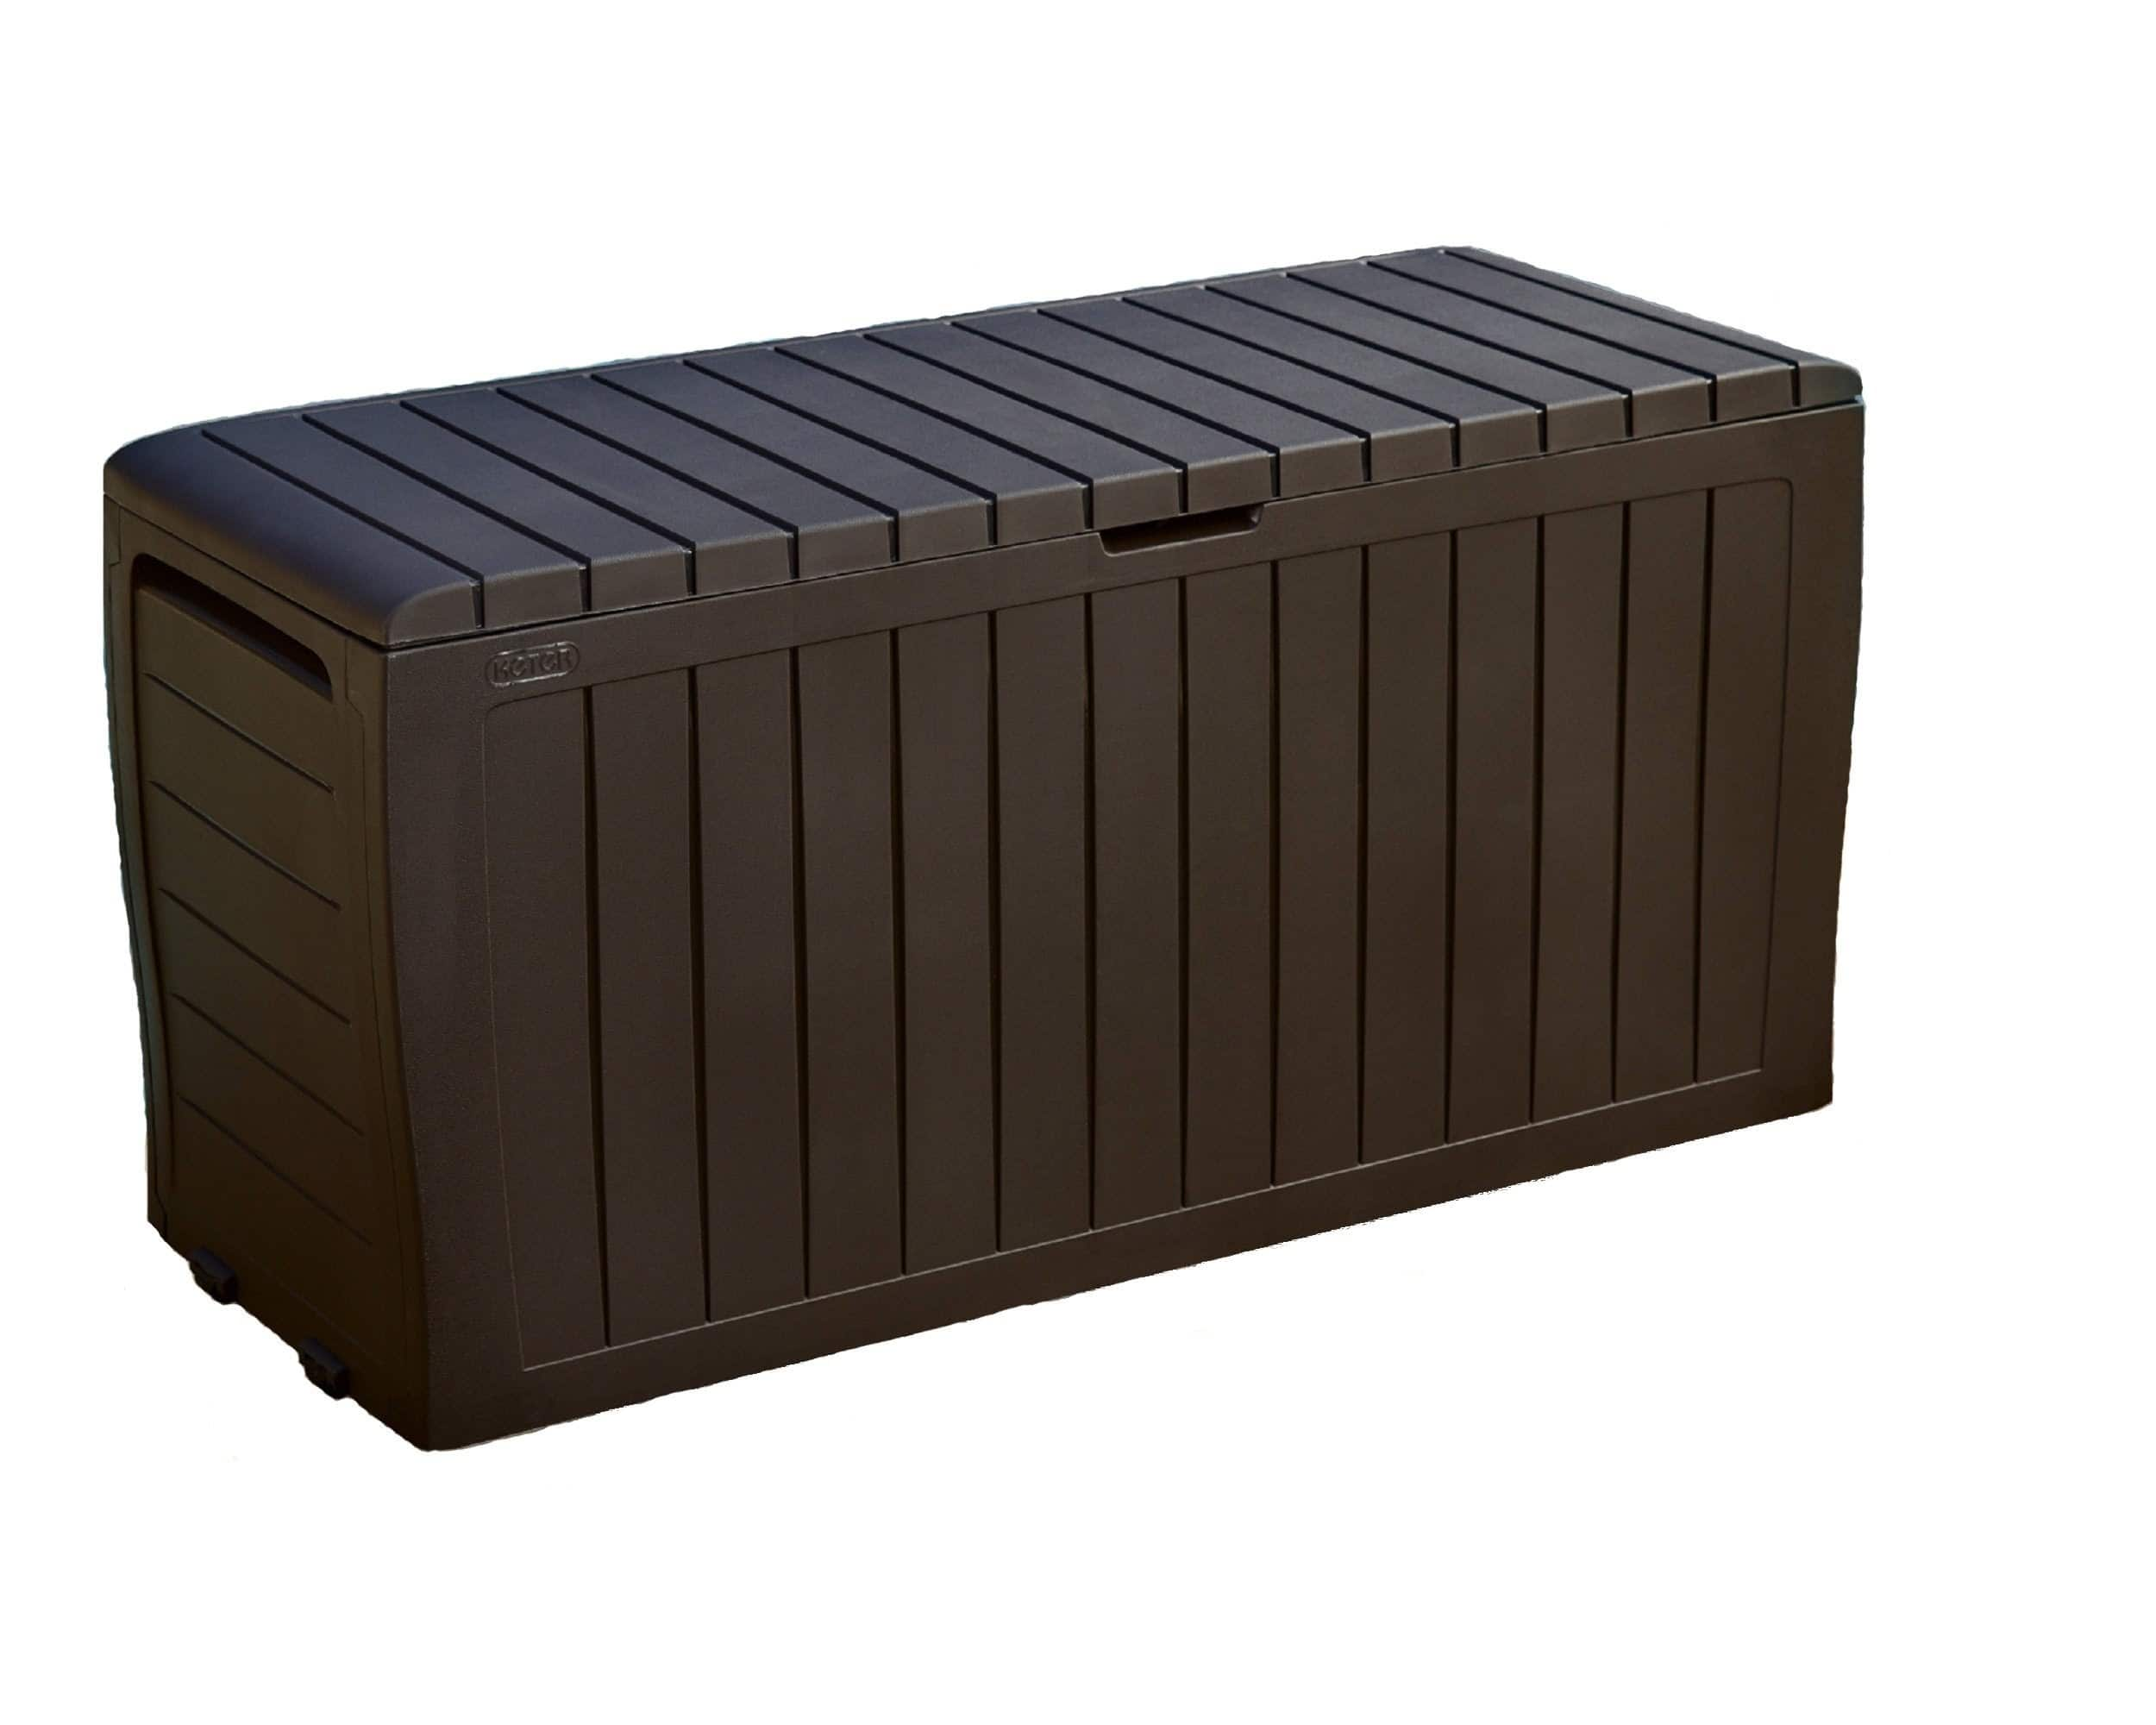 Keter Marvel Plus 71 Gallon Outdoor Storage Deck Box, Espresso Brown, $54.99, Free shipping at Amazon or Walmart